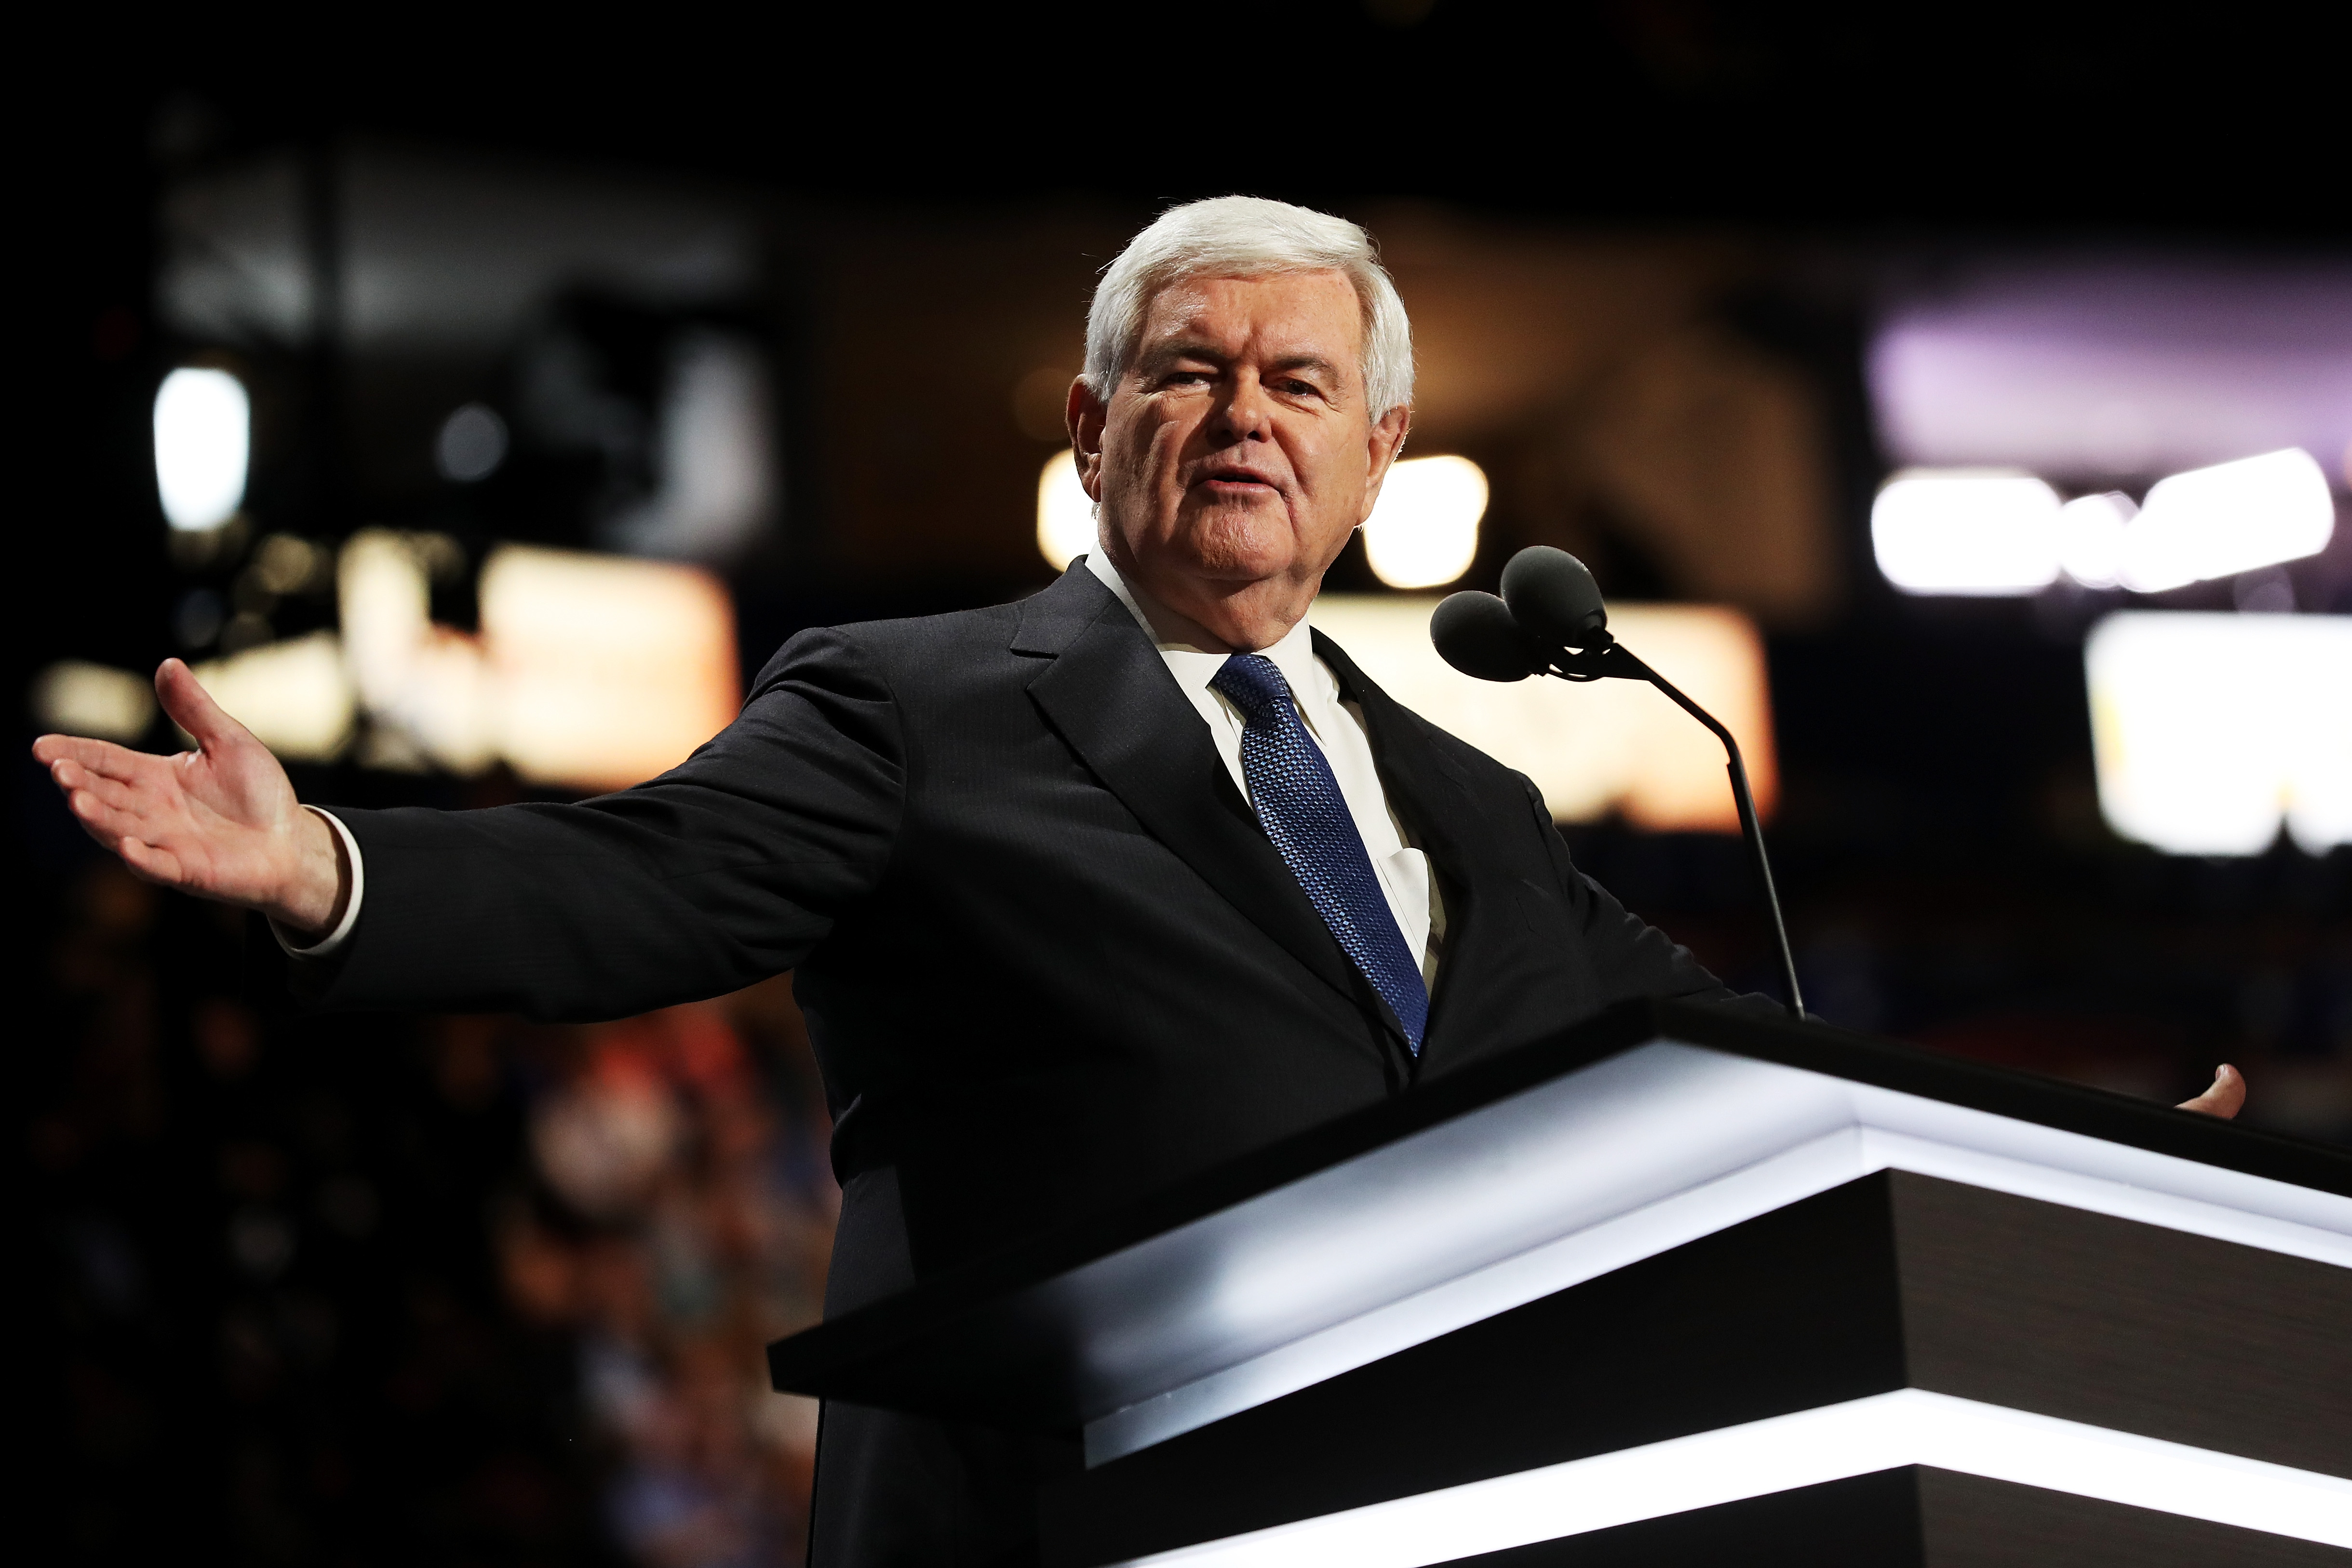 Former Speaker of the House Newt Gingrich delivers a speech on the third day of the Republican National Convention on July 20, 2016 at the Quicken Loans Arena in Cleveland, Ohio.